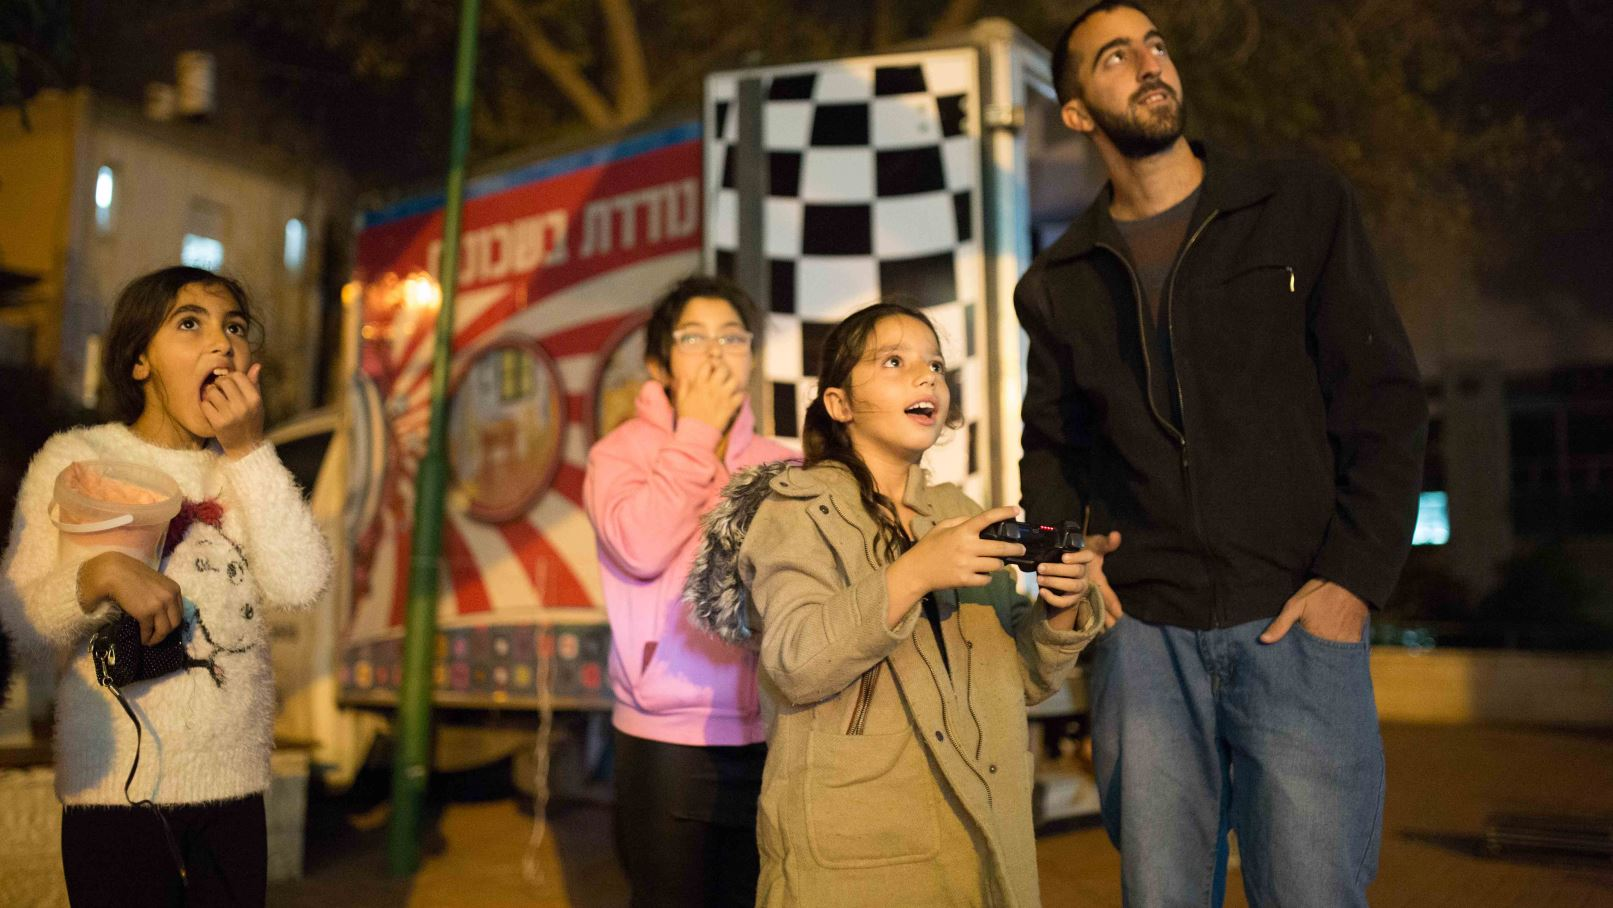 Residents enjoying a Zaza pop-up event in Jerusalem. Photo by Maxim Dinshtein